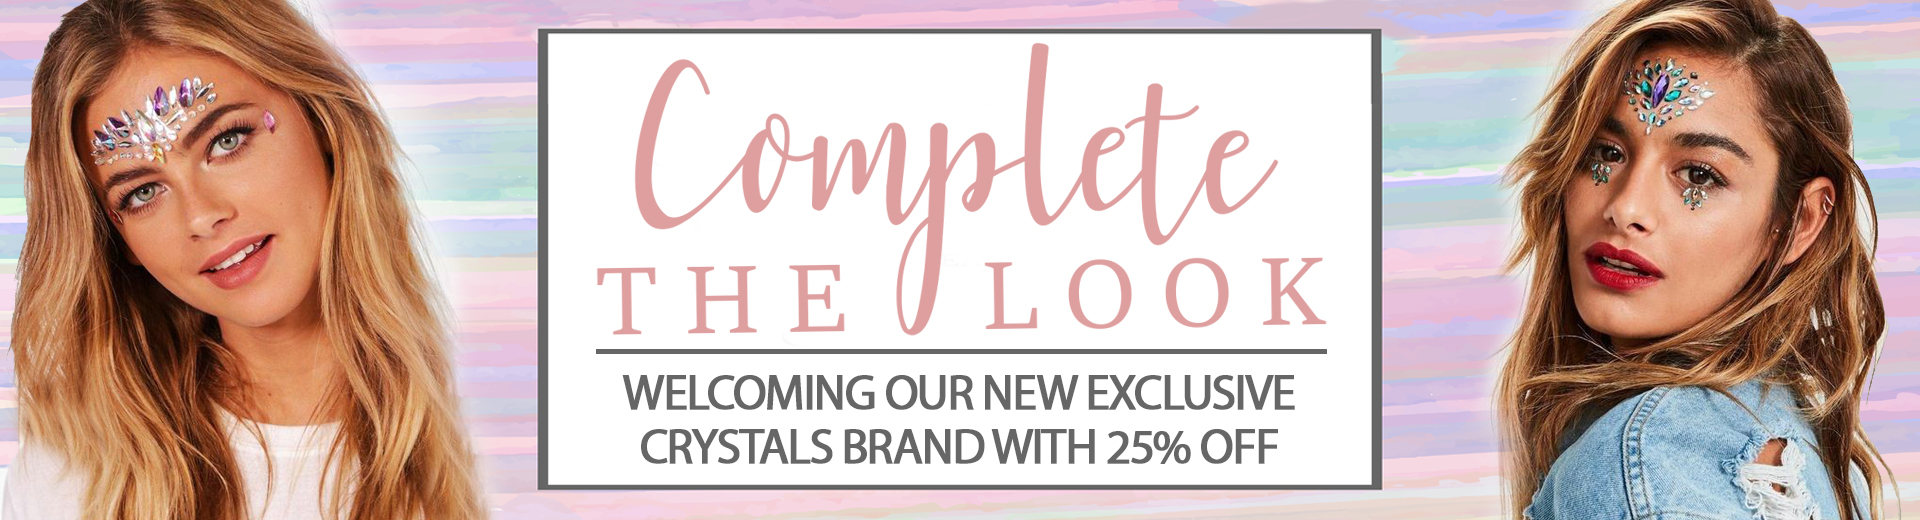 Complete the Look Welcome Sale MyStripperCloset.com